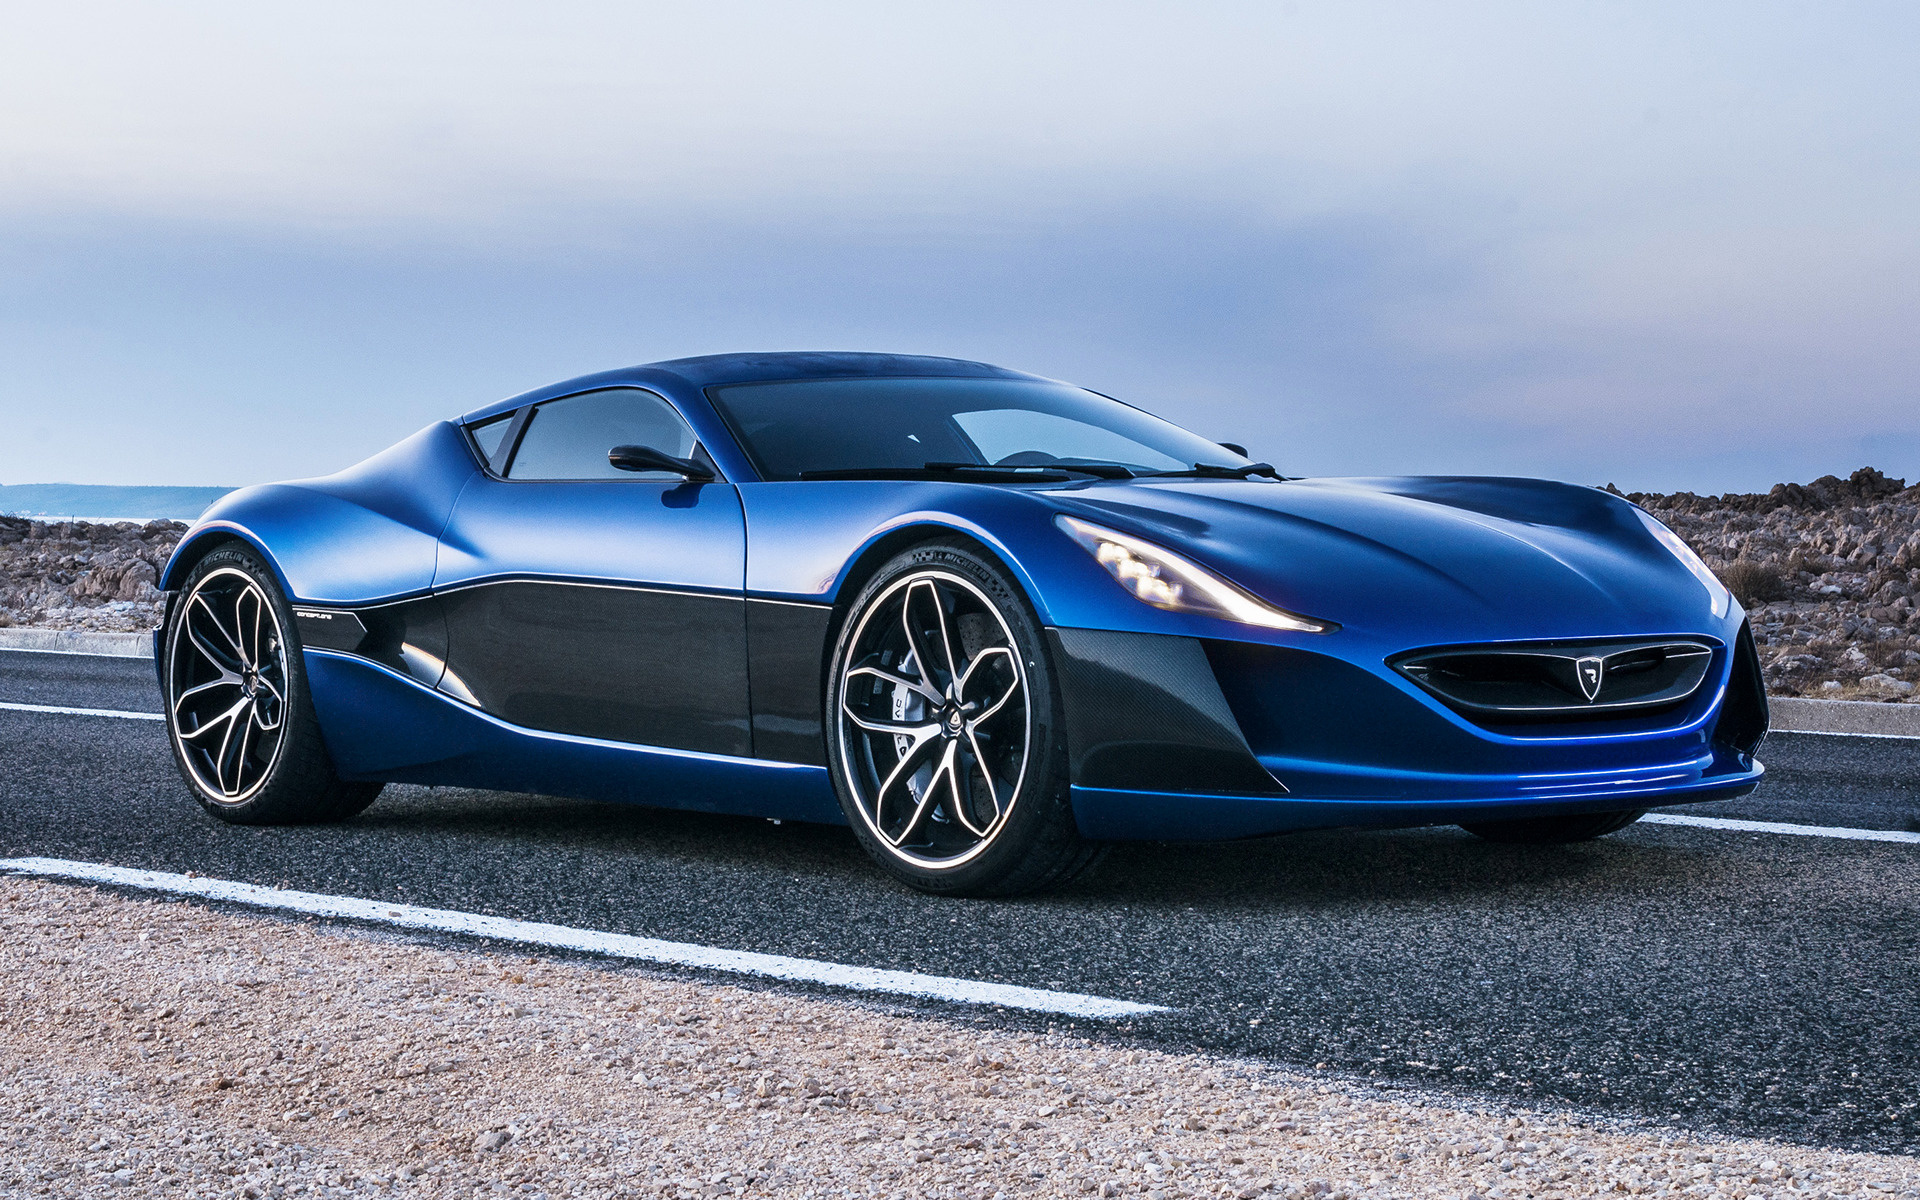 The Rimac Concept One Embarrasses Yet Another Hyper Car In